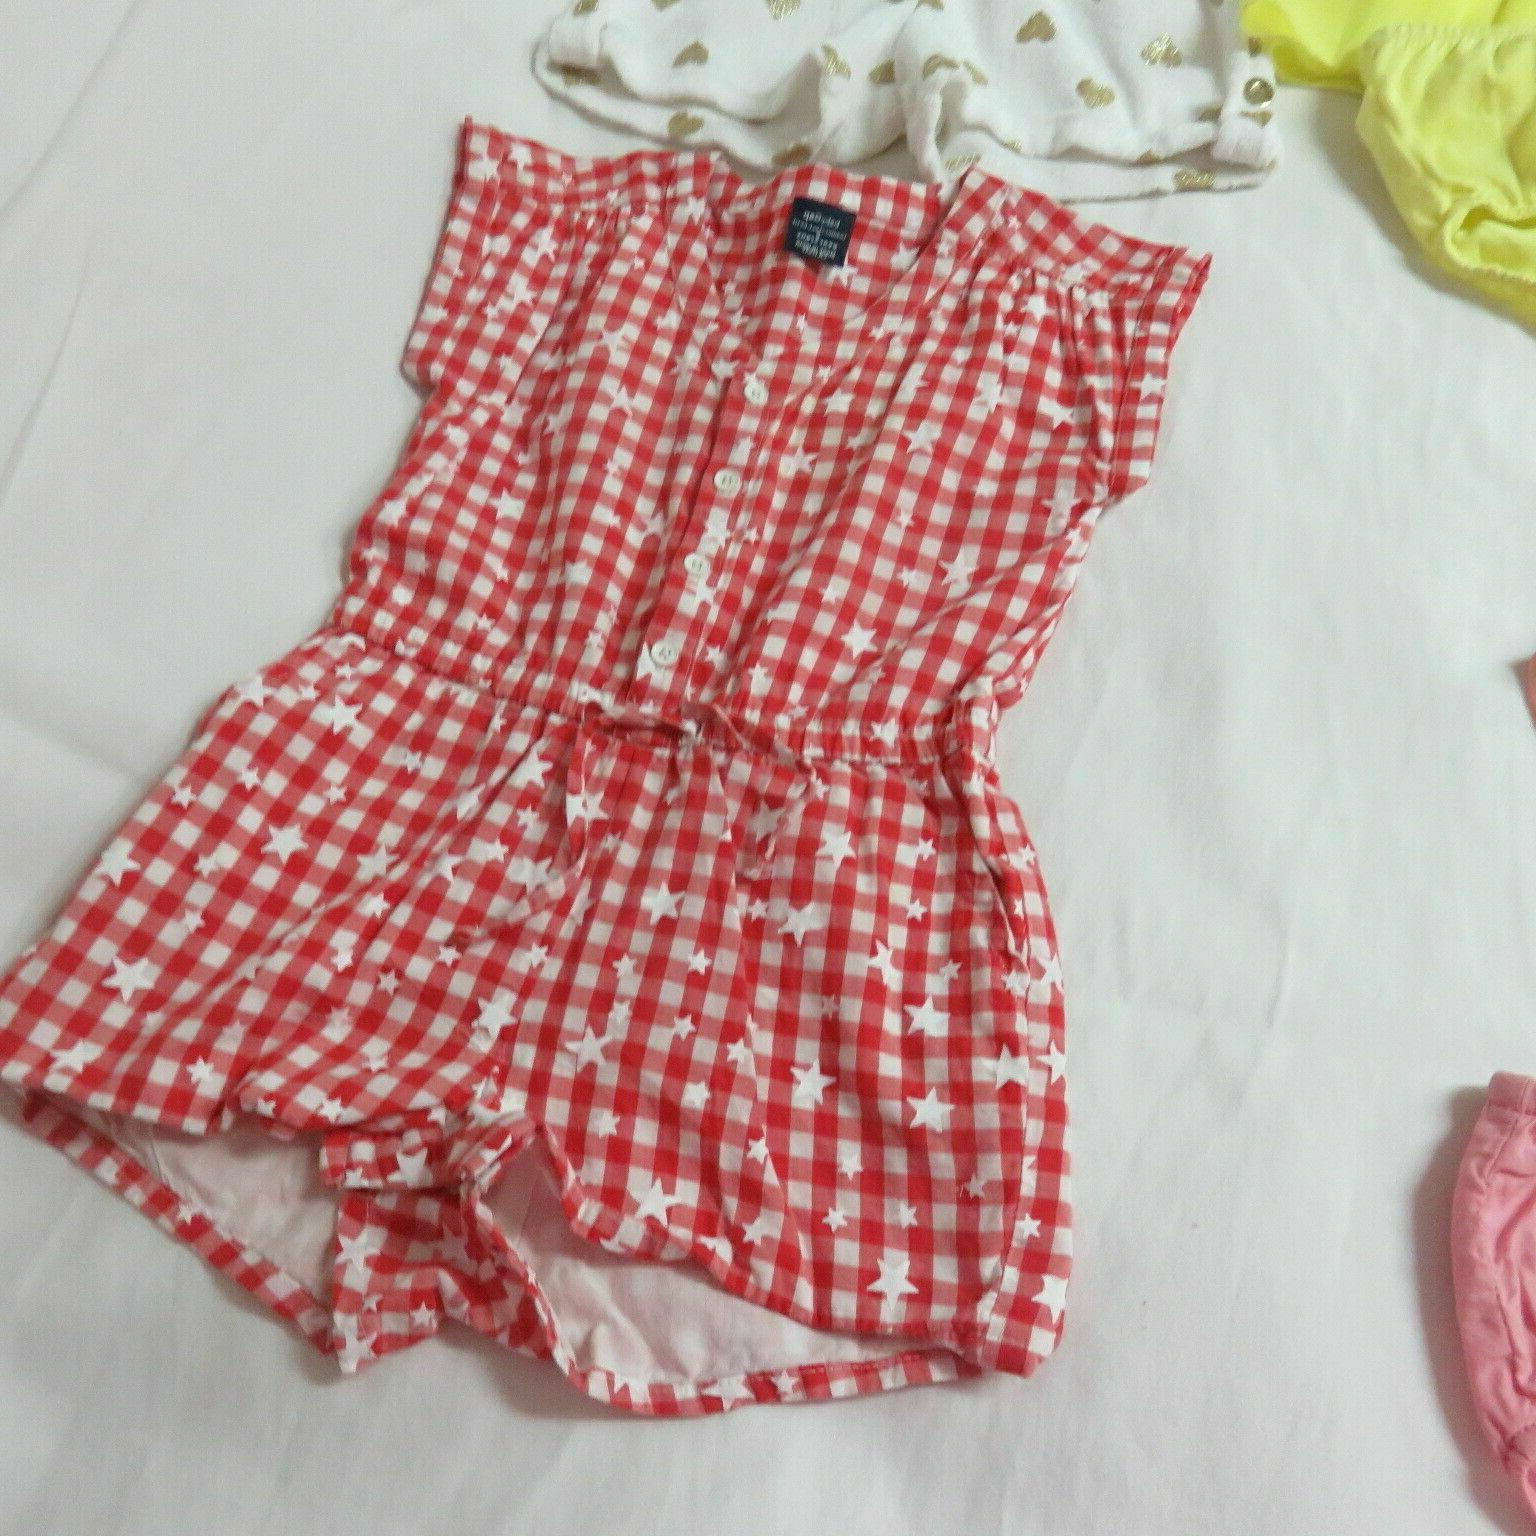 Girls 10 Pce Clothing Lot Juicy Guess & Gap Grouping Size